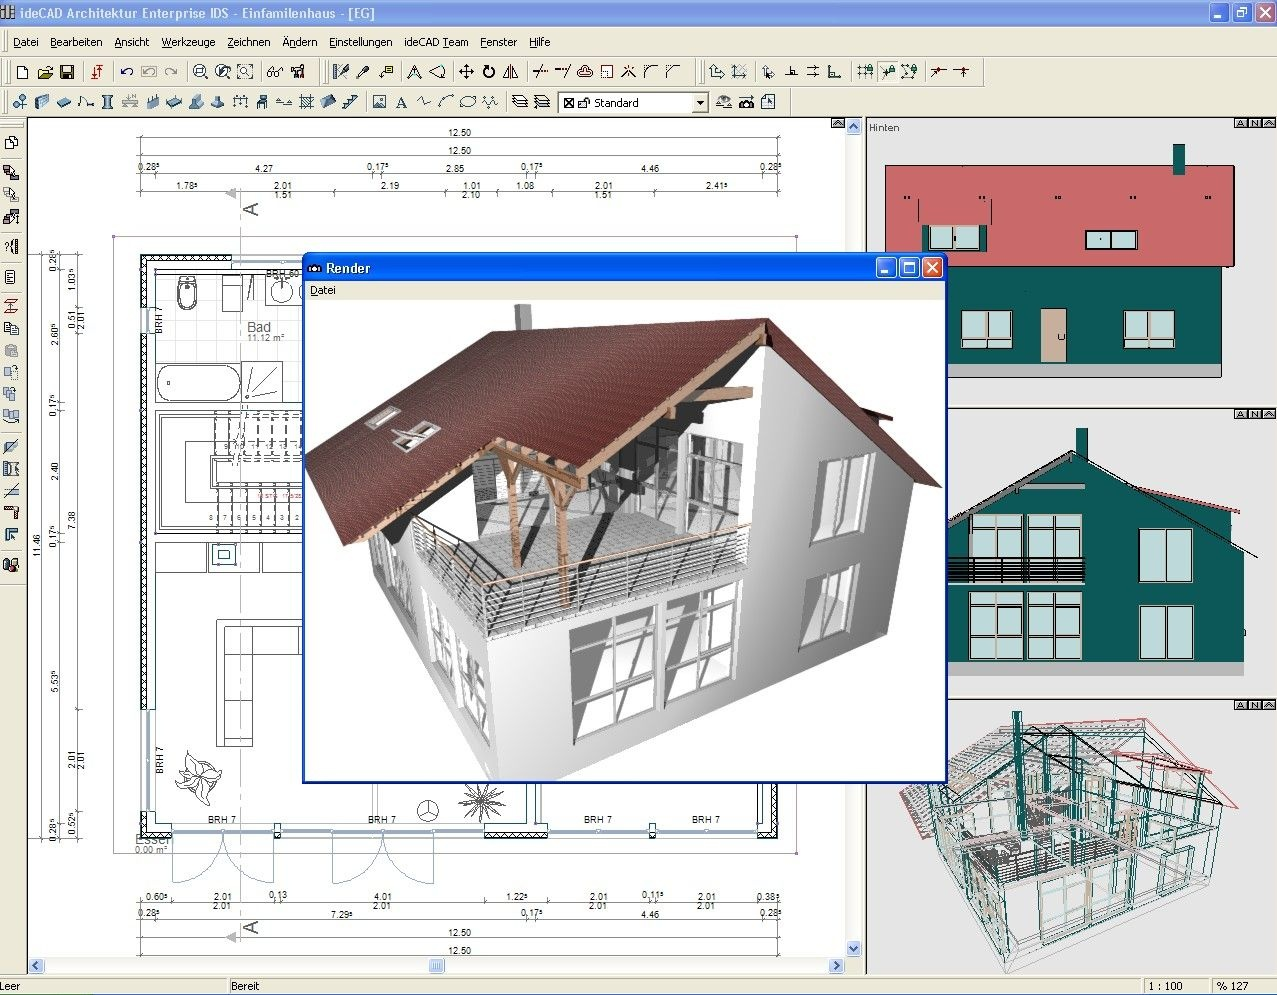 Idecad architektur heise download for 2d architectural drawing software free